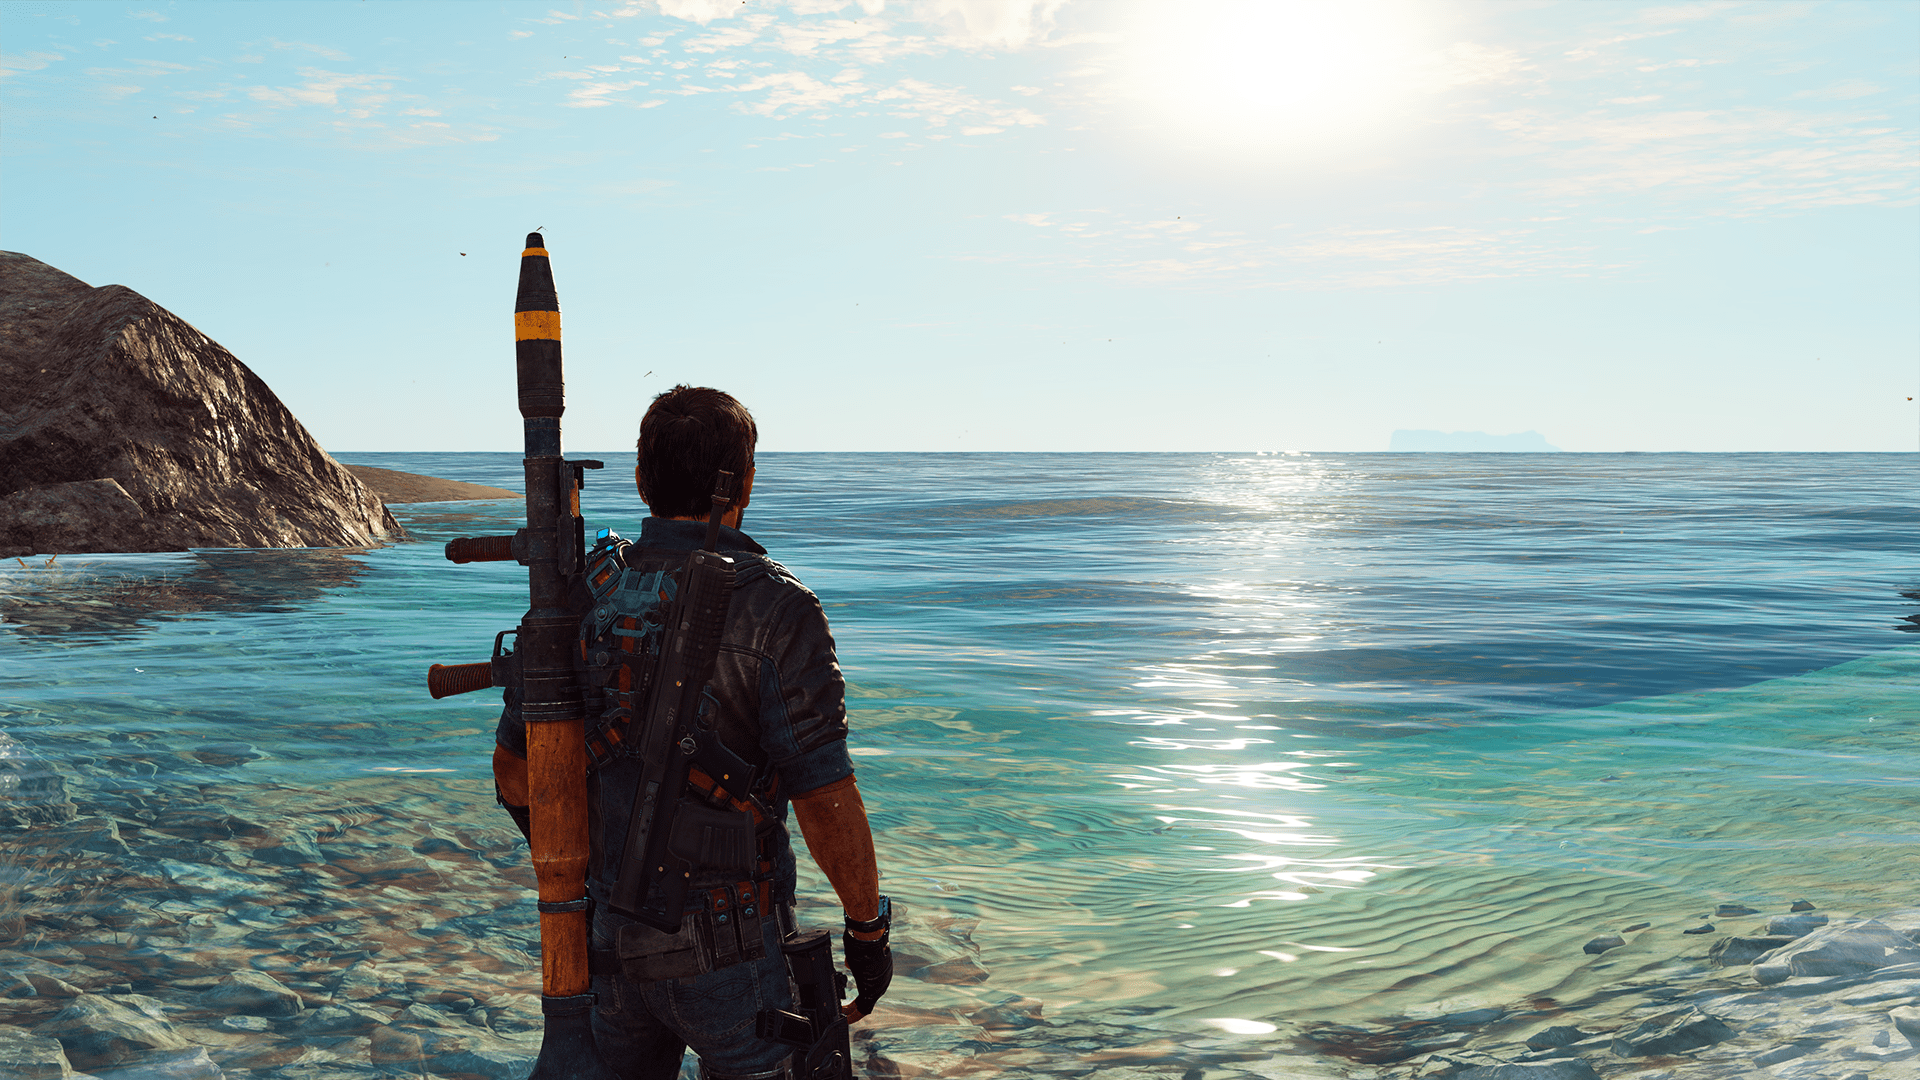 Geforce Com Just Cause 3 Water Tessellation Interactive Comparison On Vs Off Example 001